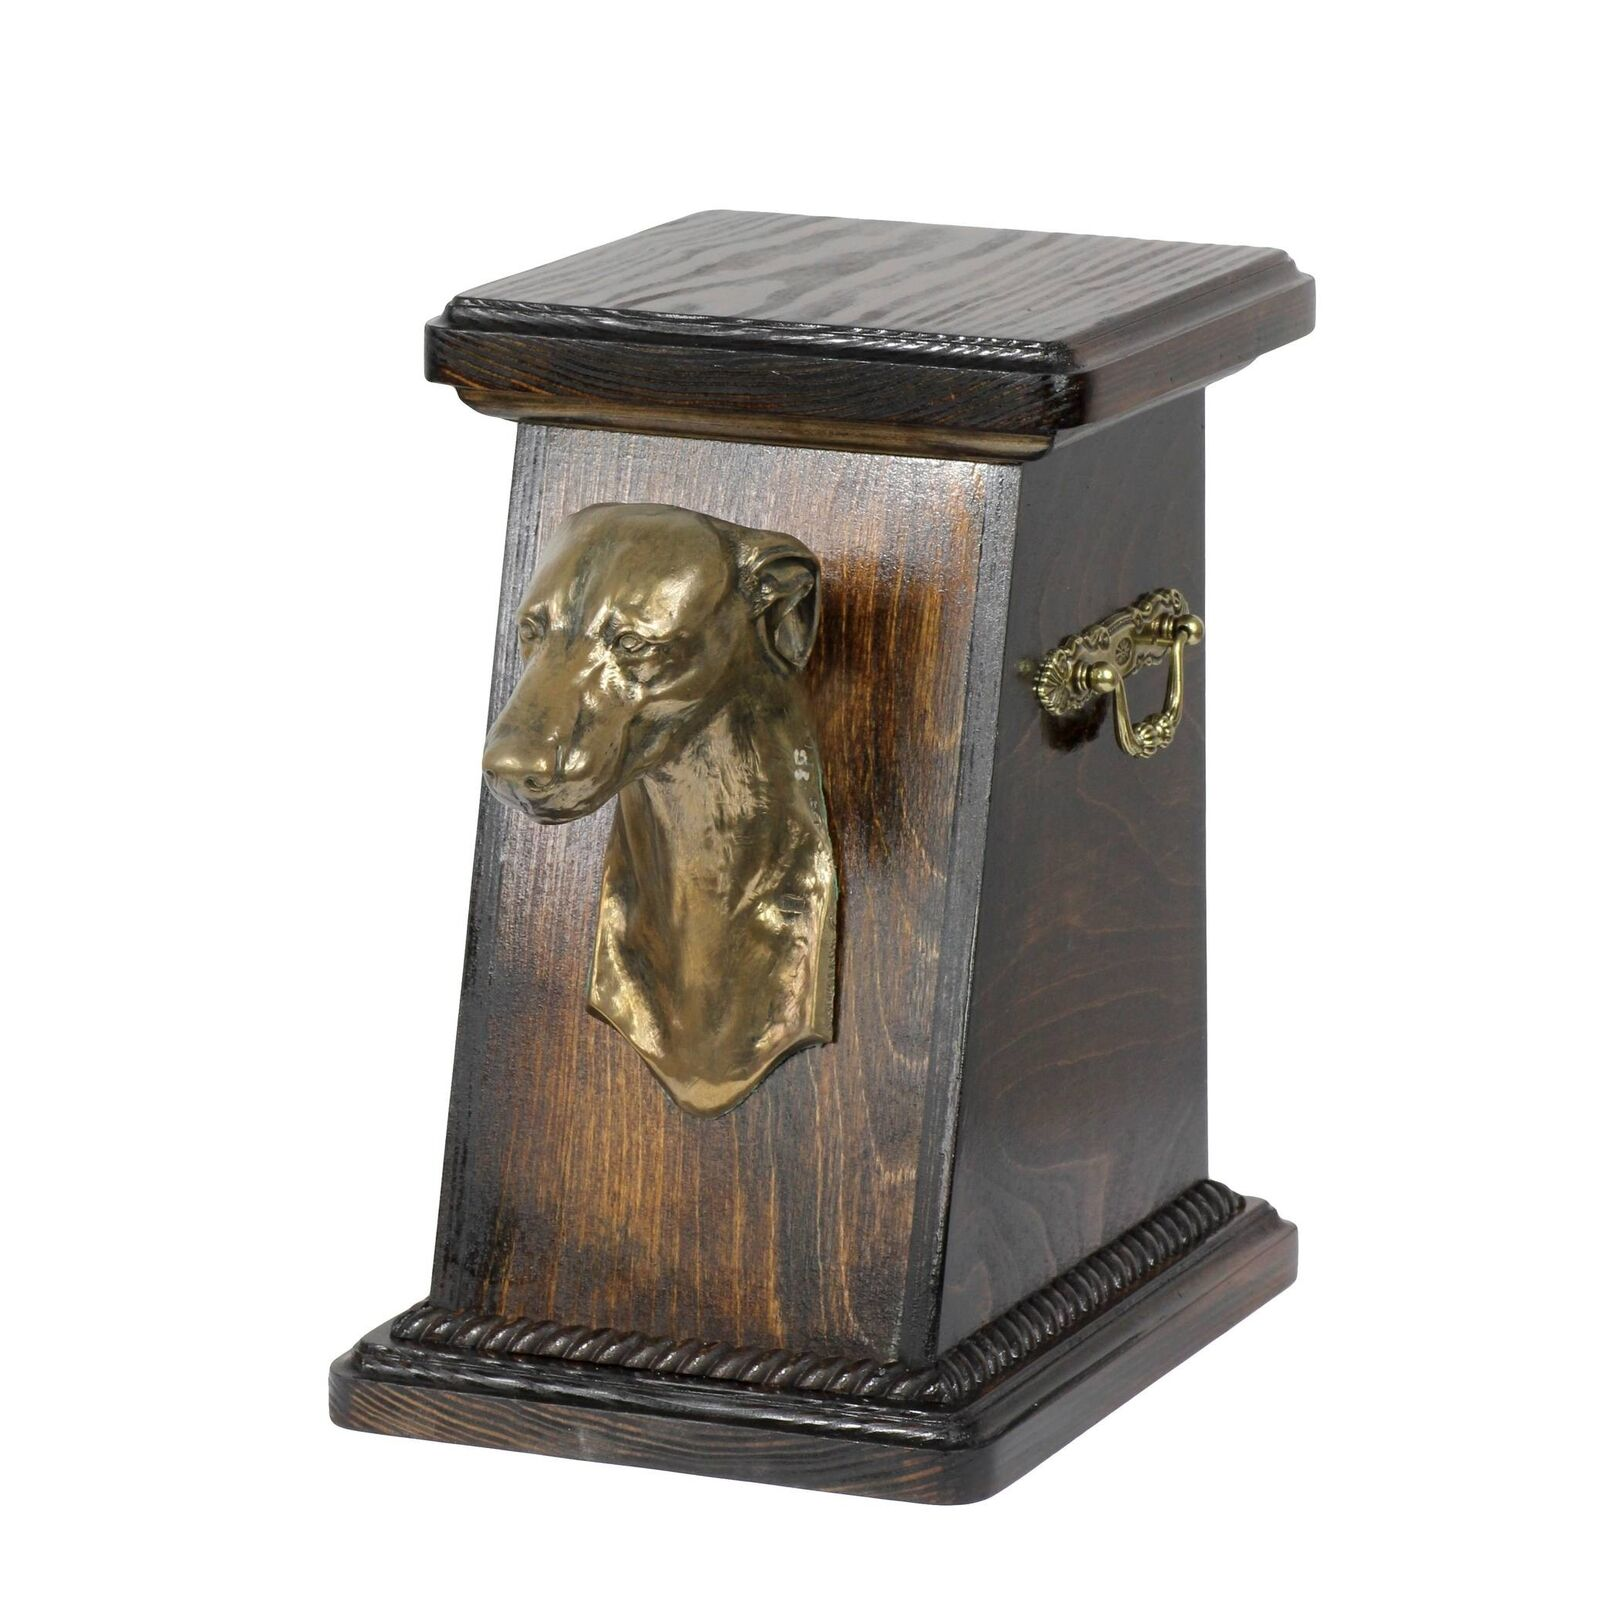 Whippet type 2 - exclusive urn for dog with statue, Art Dog type 2